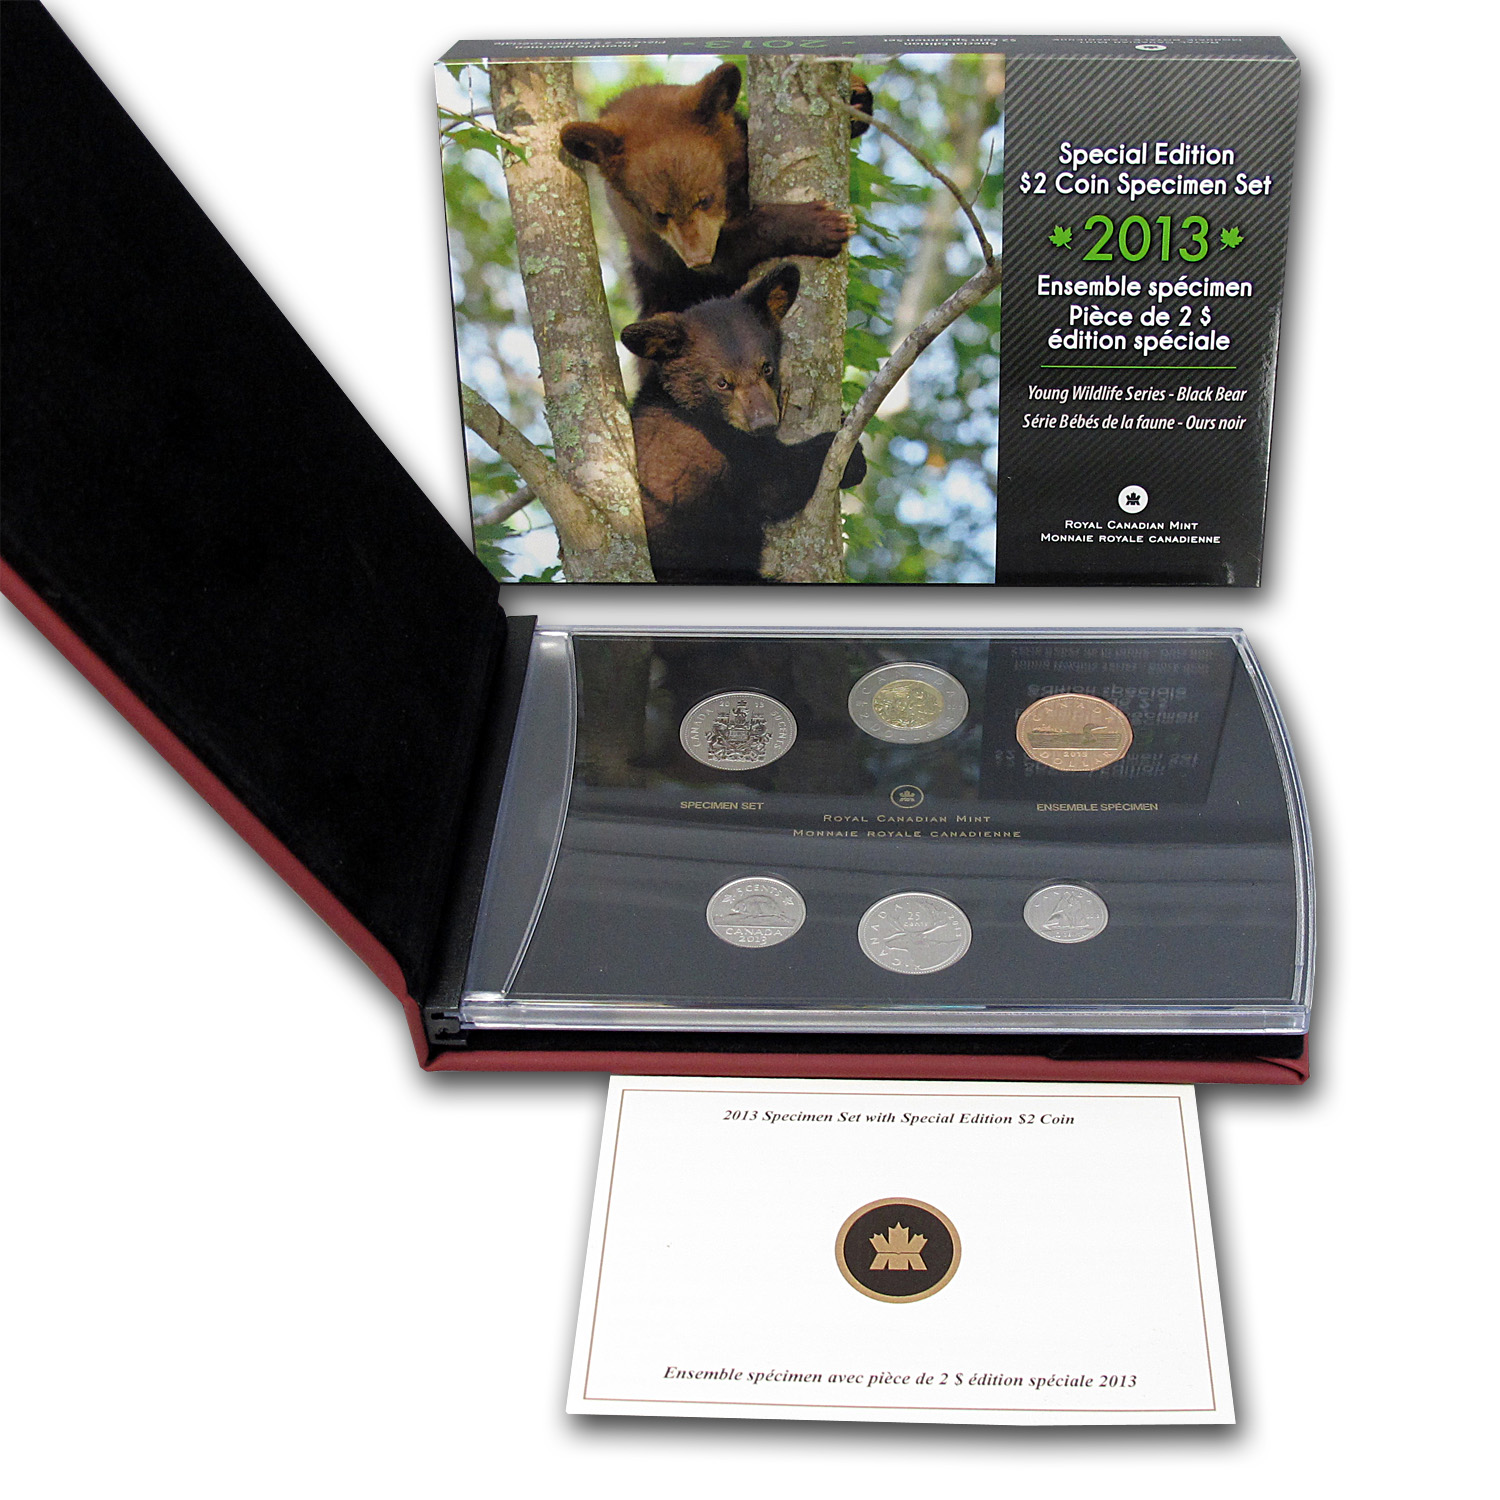 2013 6-Coin Special Edition $2 Specimen Set (Black Bear Cubs)